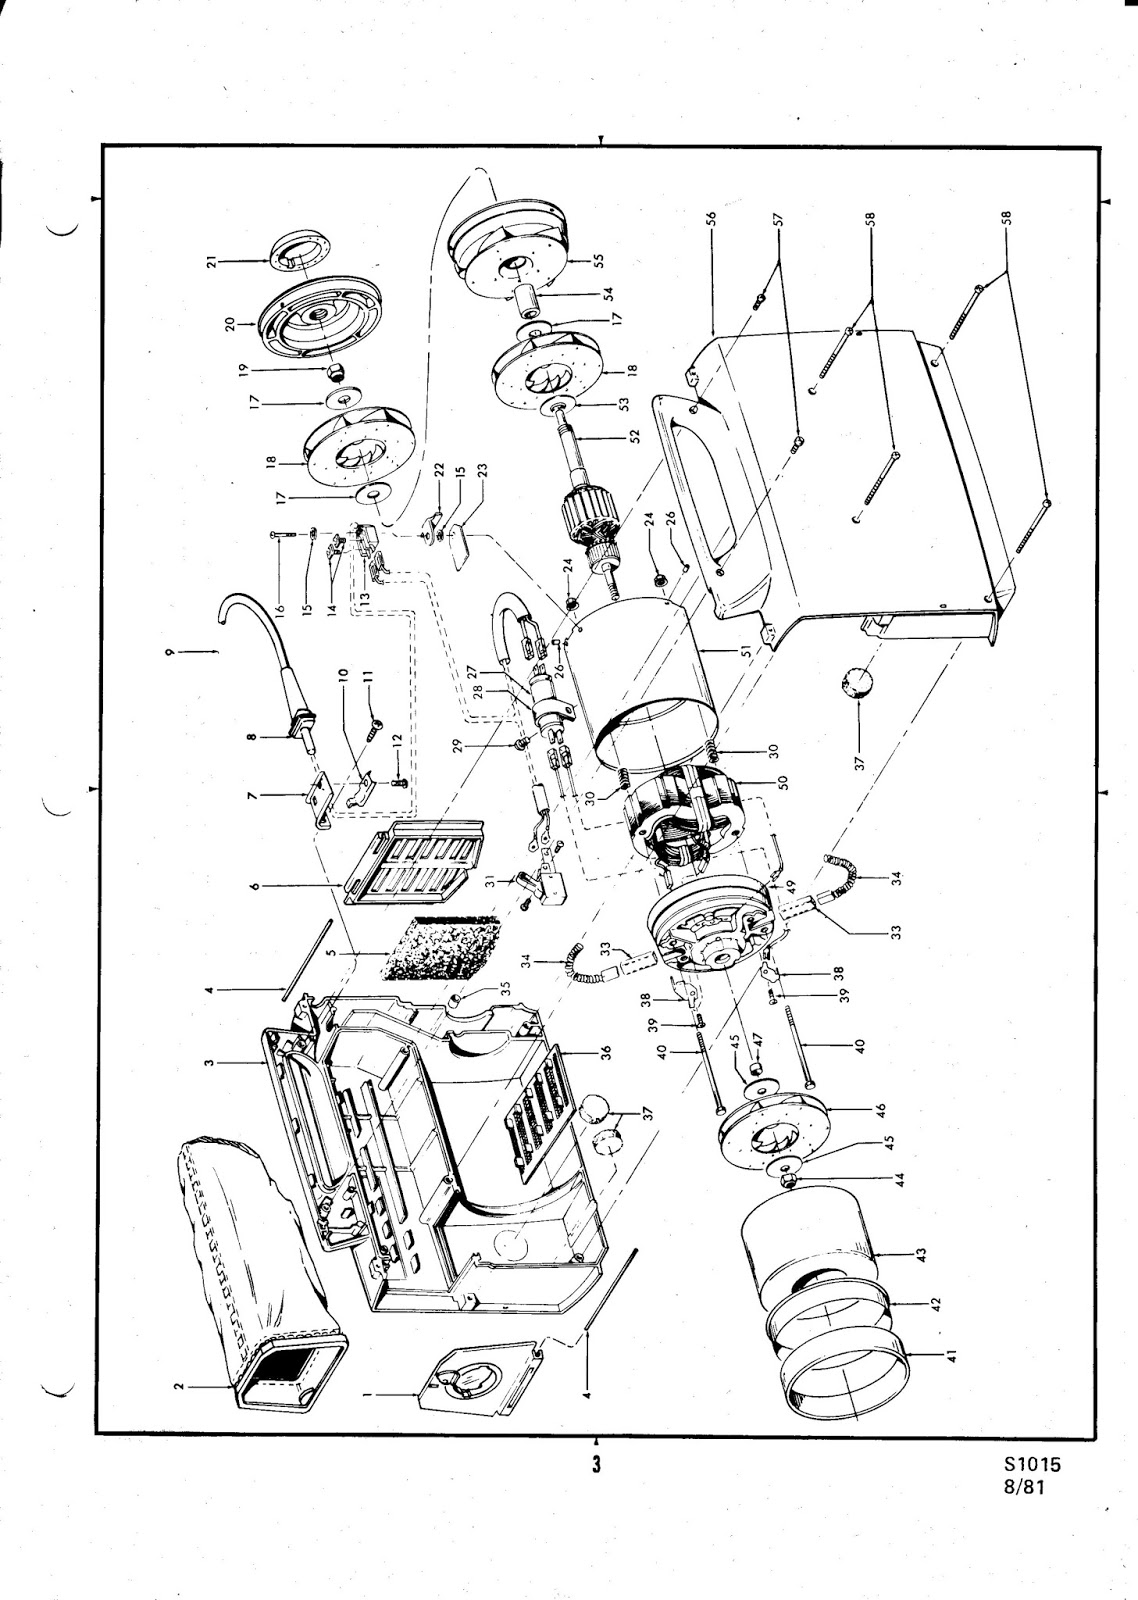 Hoover Portapower S1015 Service Manual